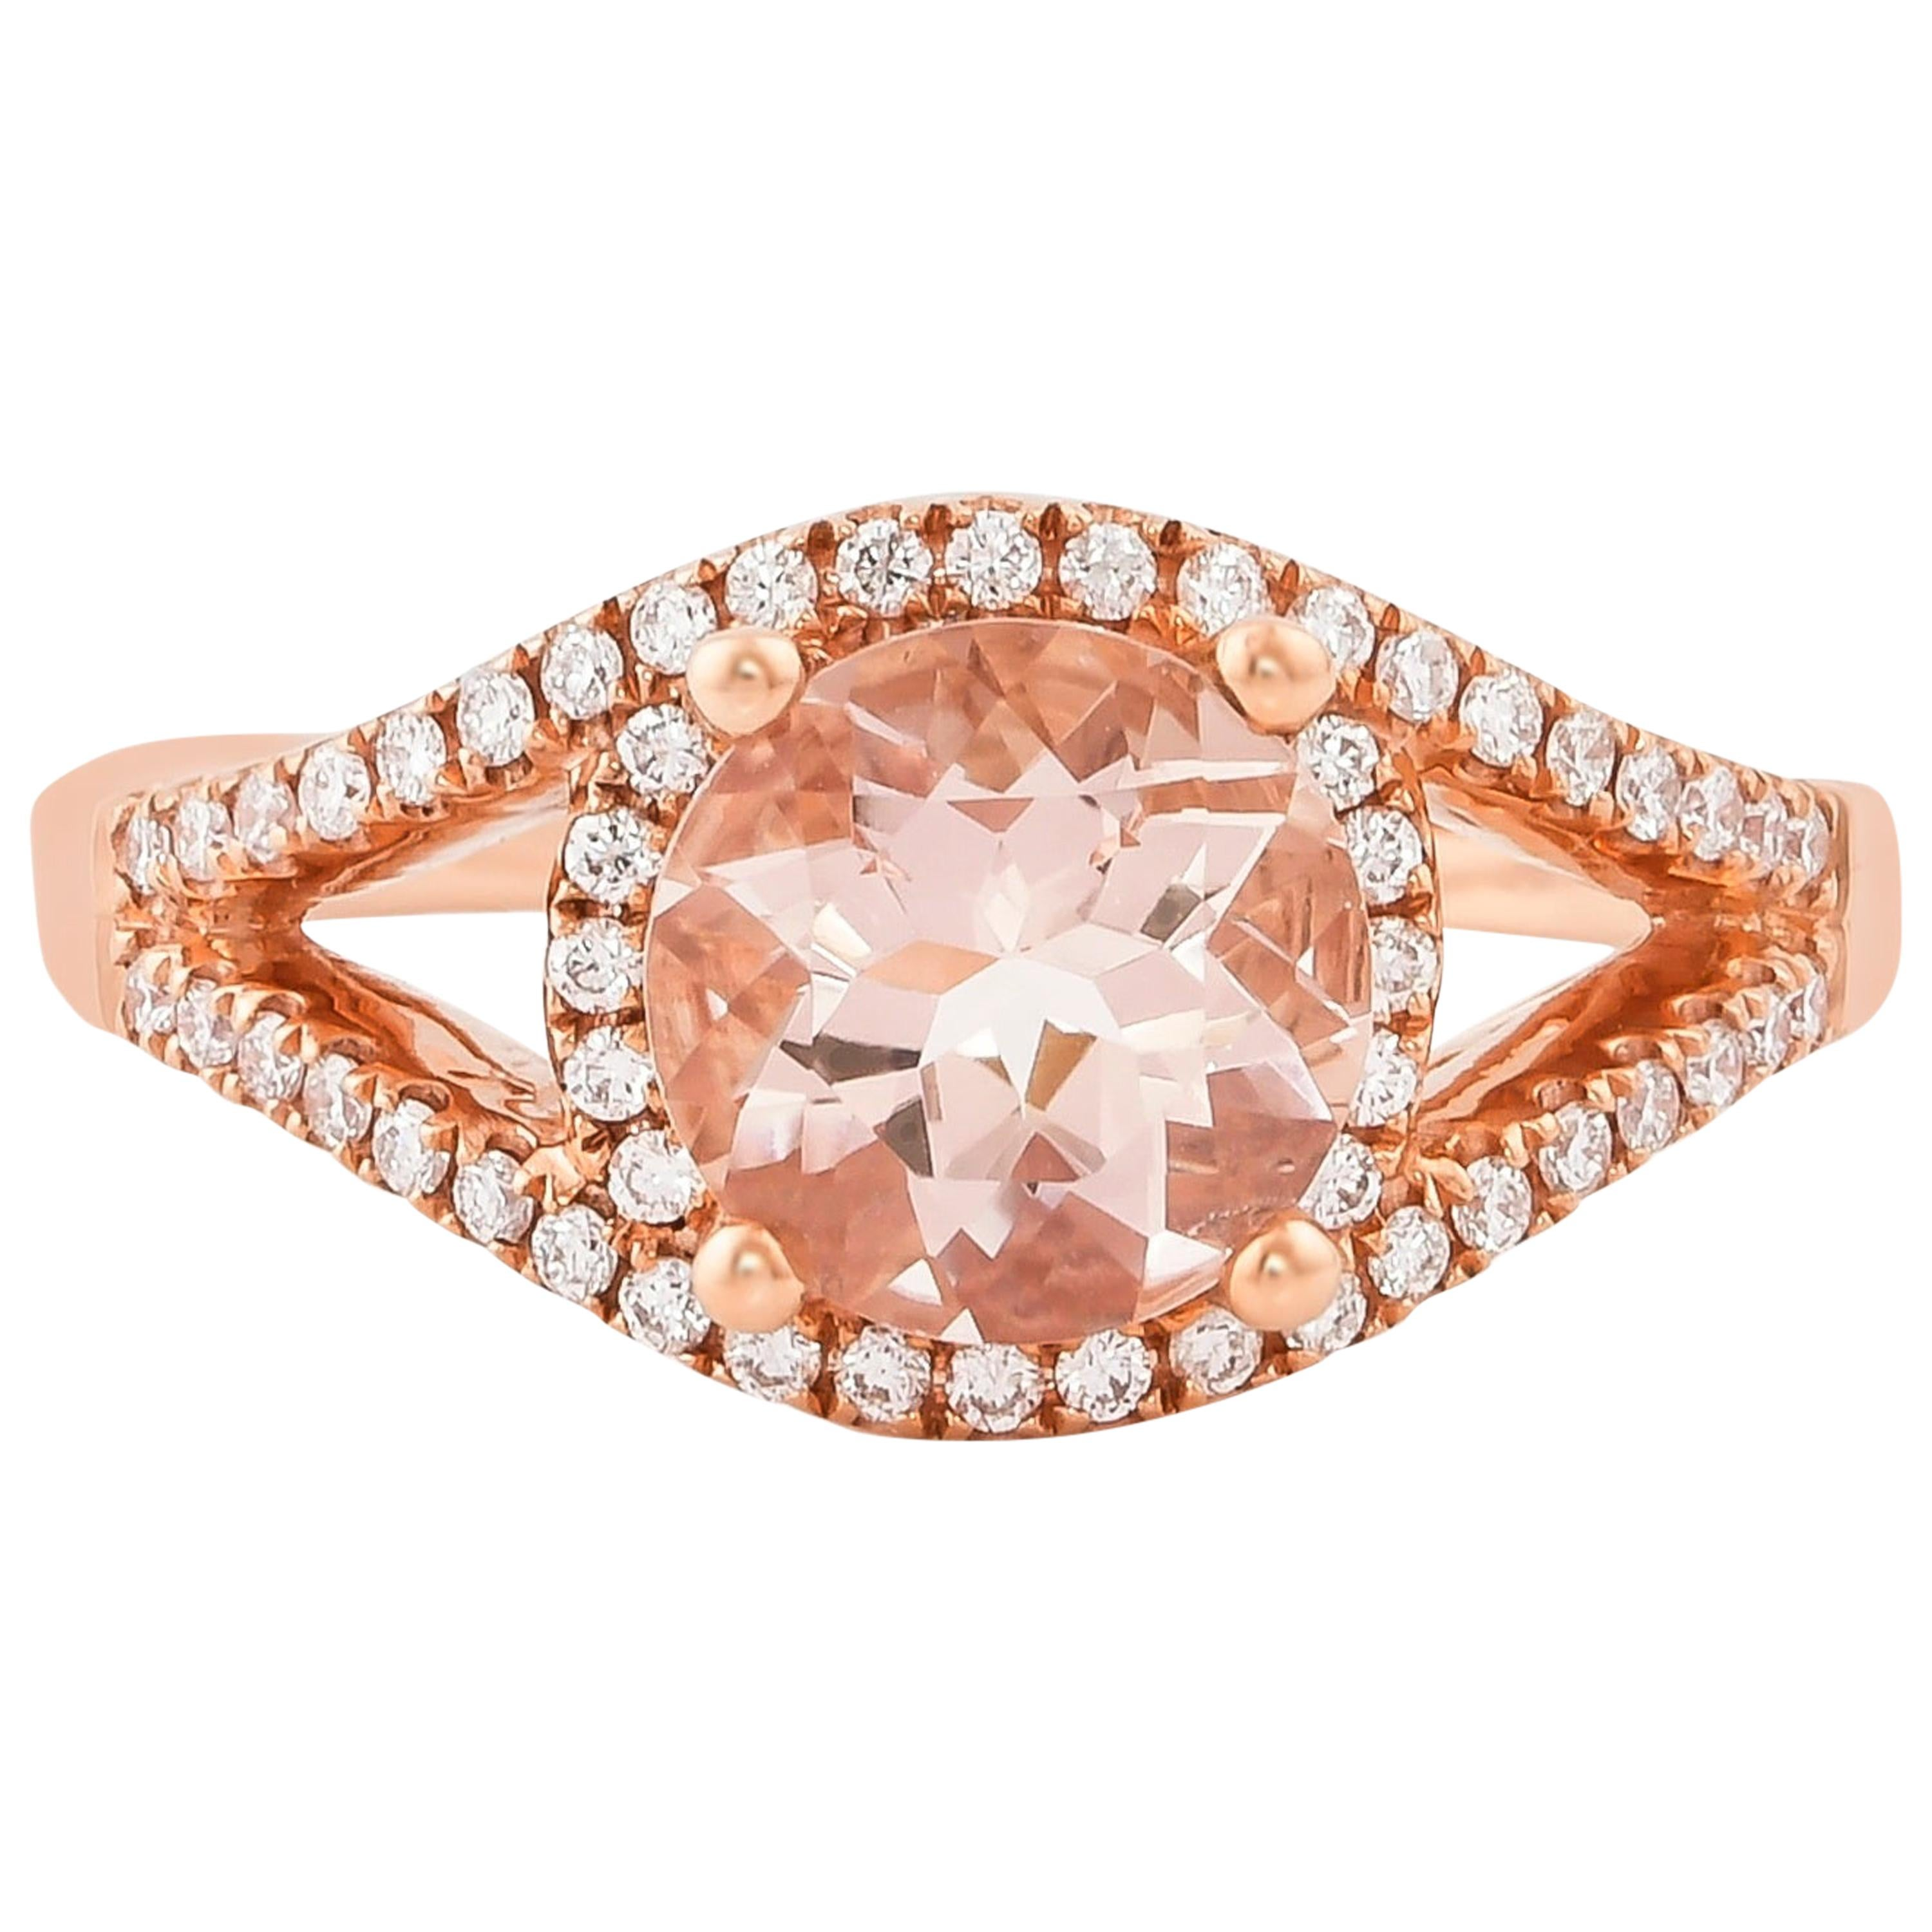 1.8 Carat Morganite and Diamond Ring in 18 Karat Rose Gold